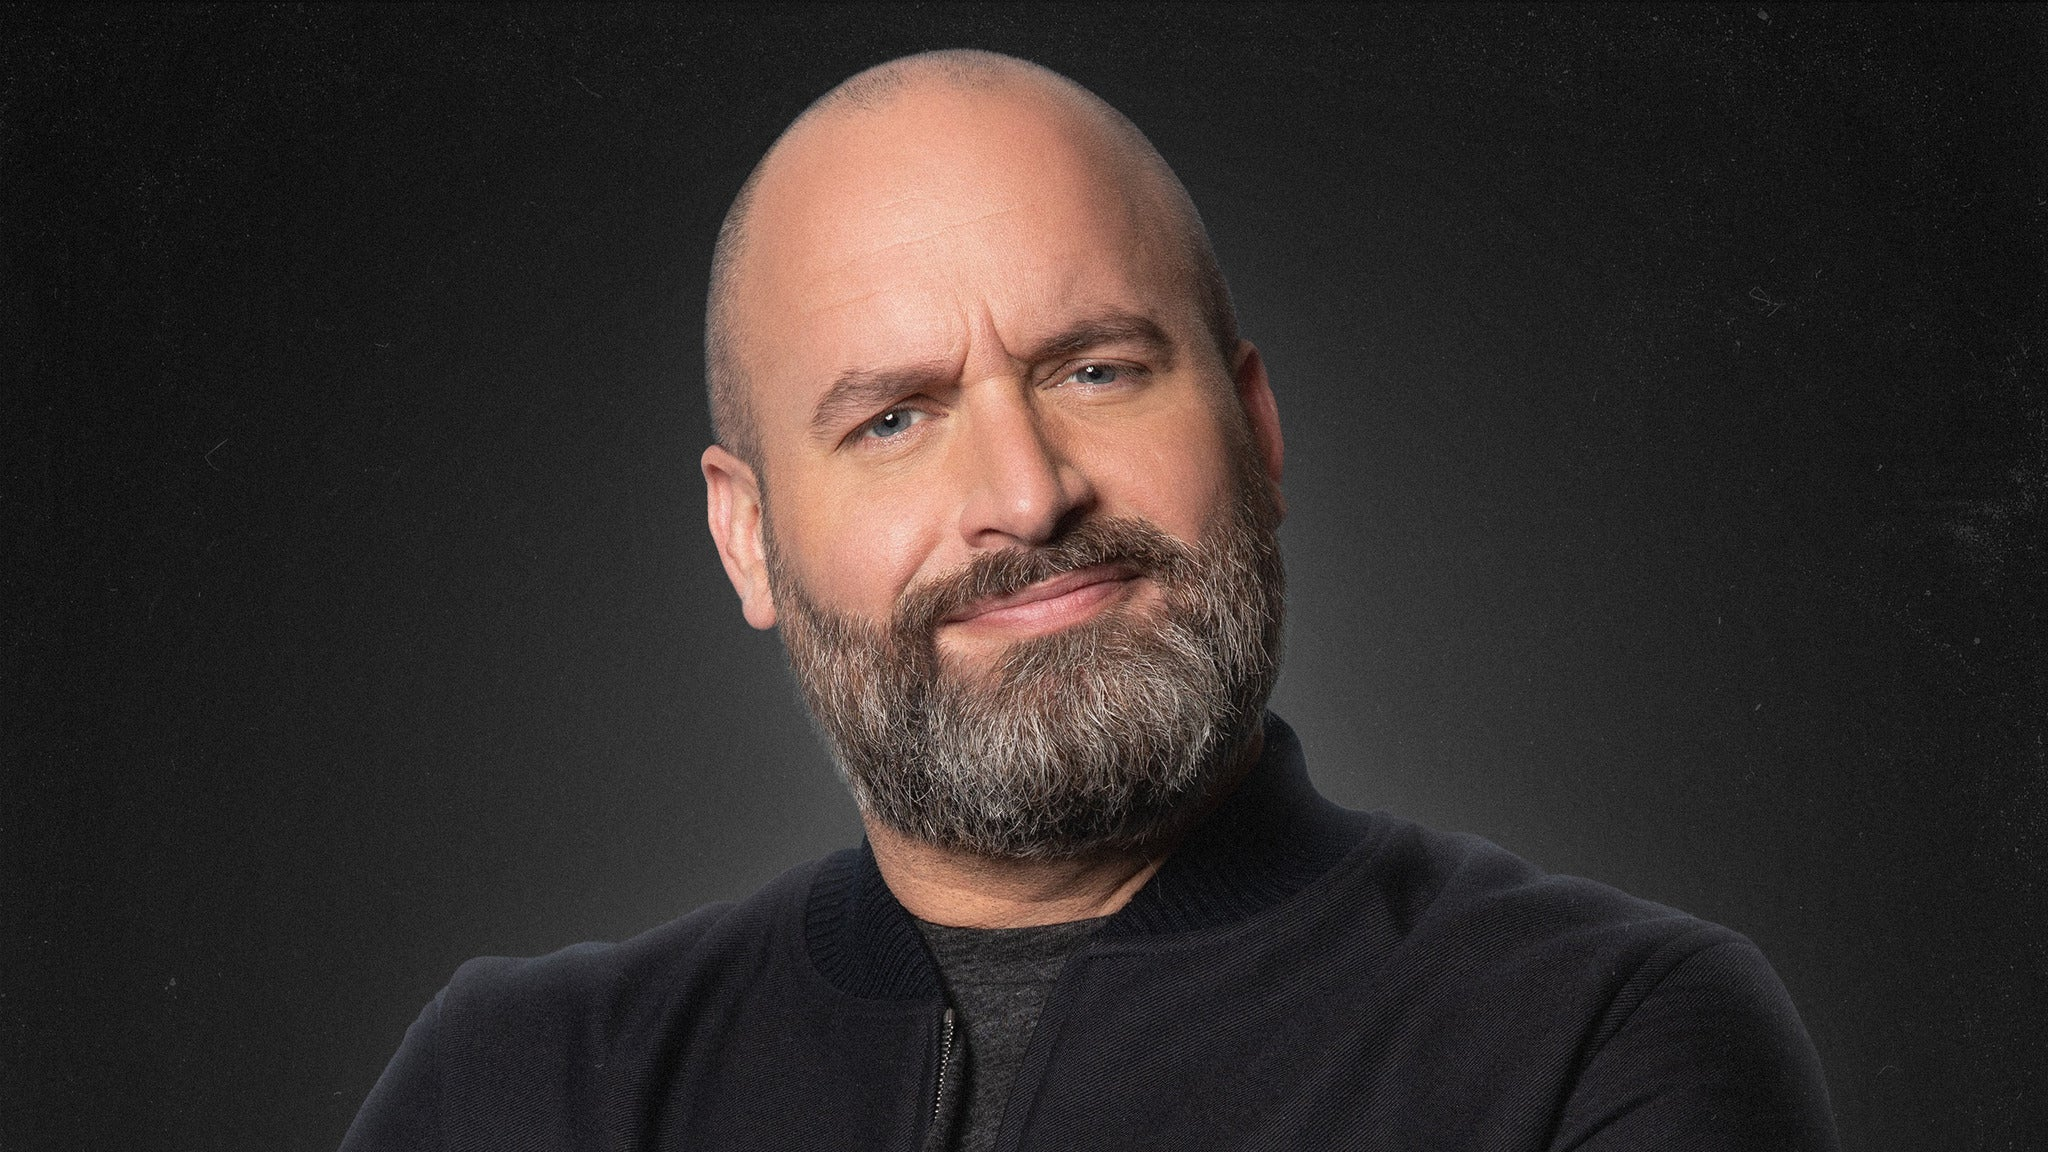 Tom Segura - I'm Coming Everywhere - World Tour presale password for early tickets in Chattanooga